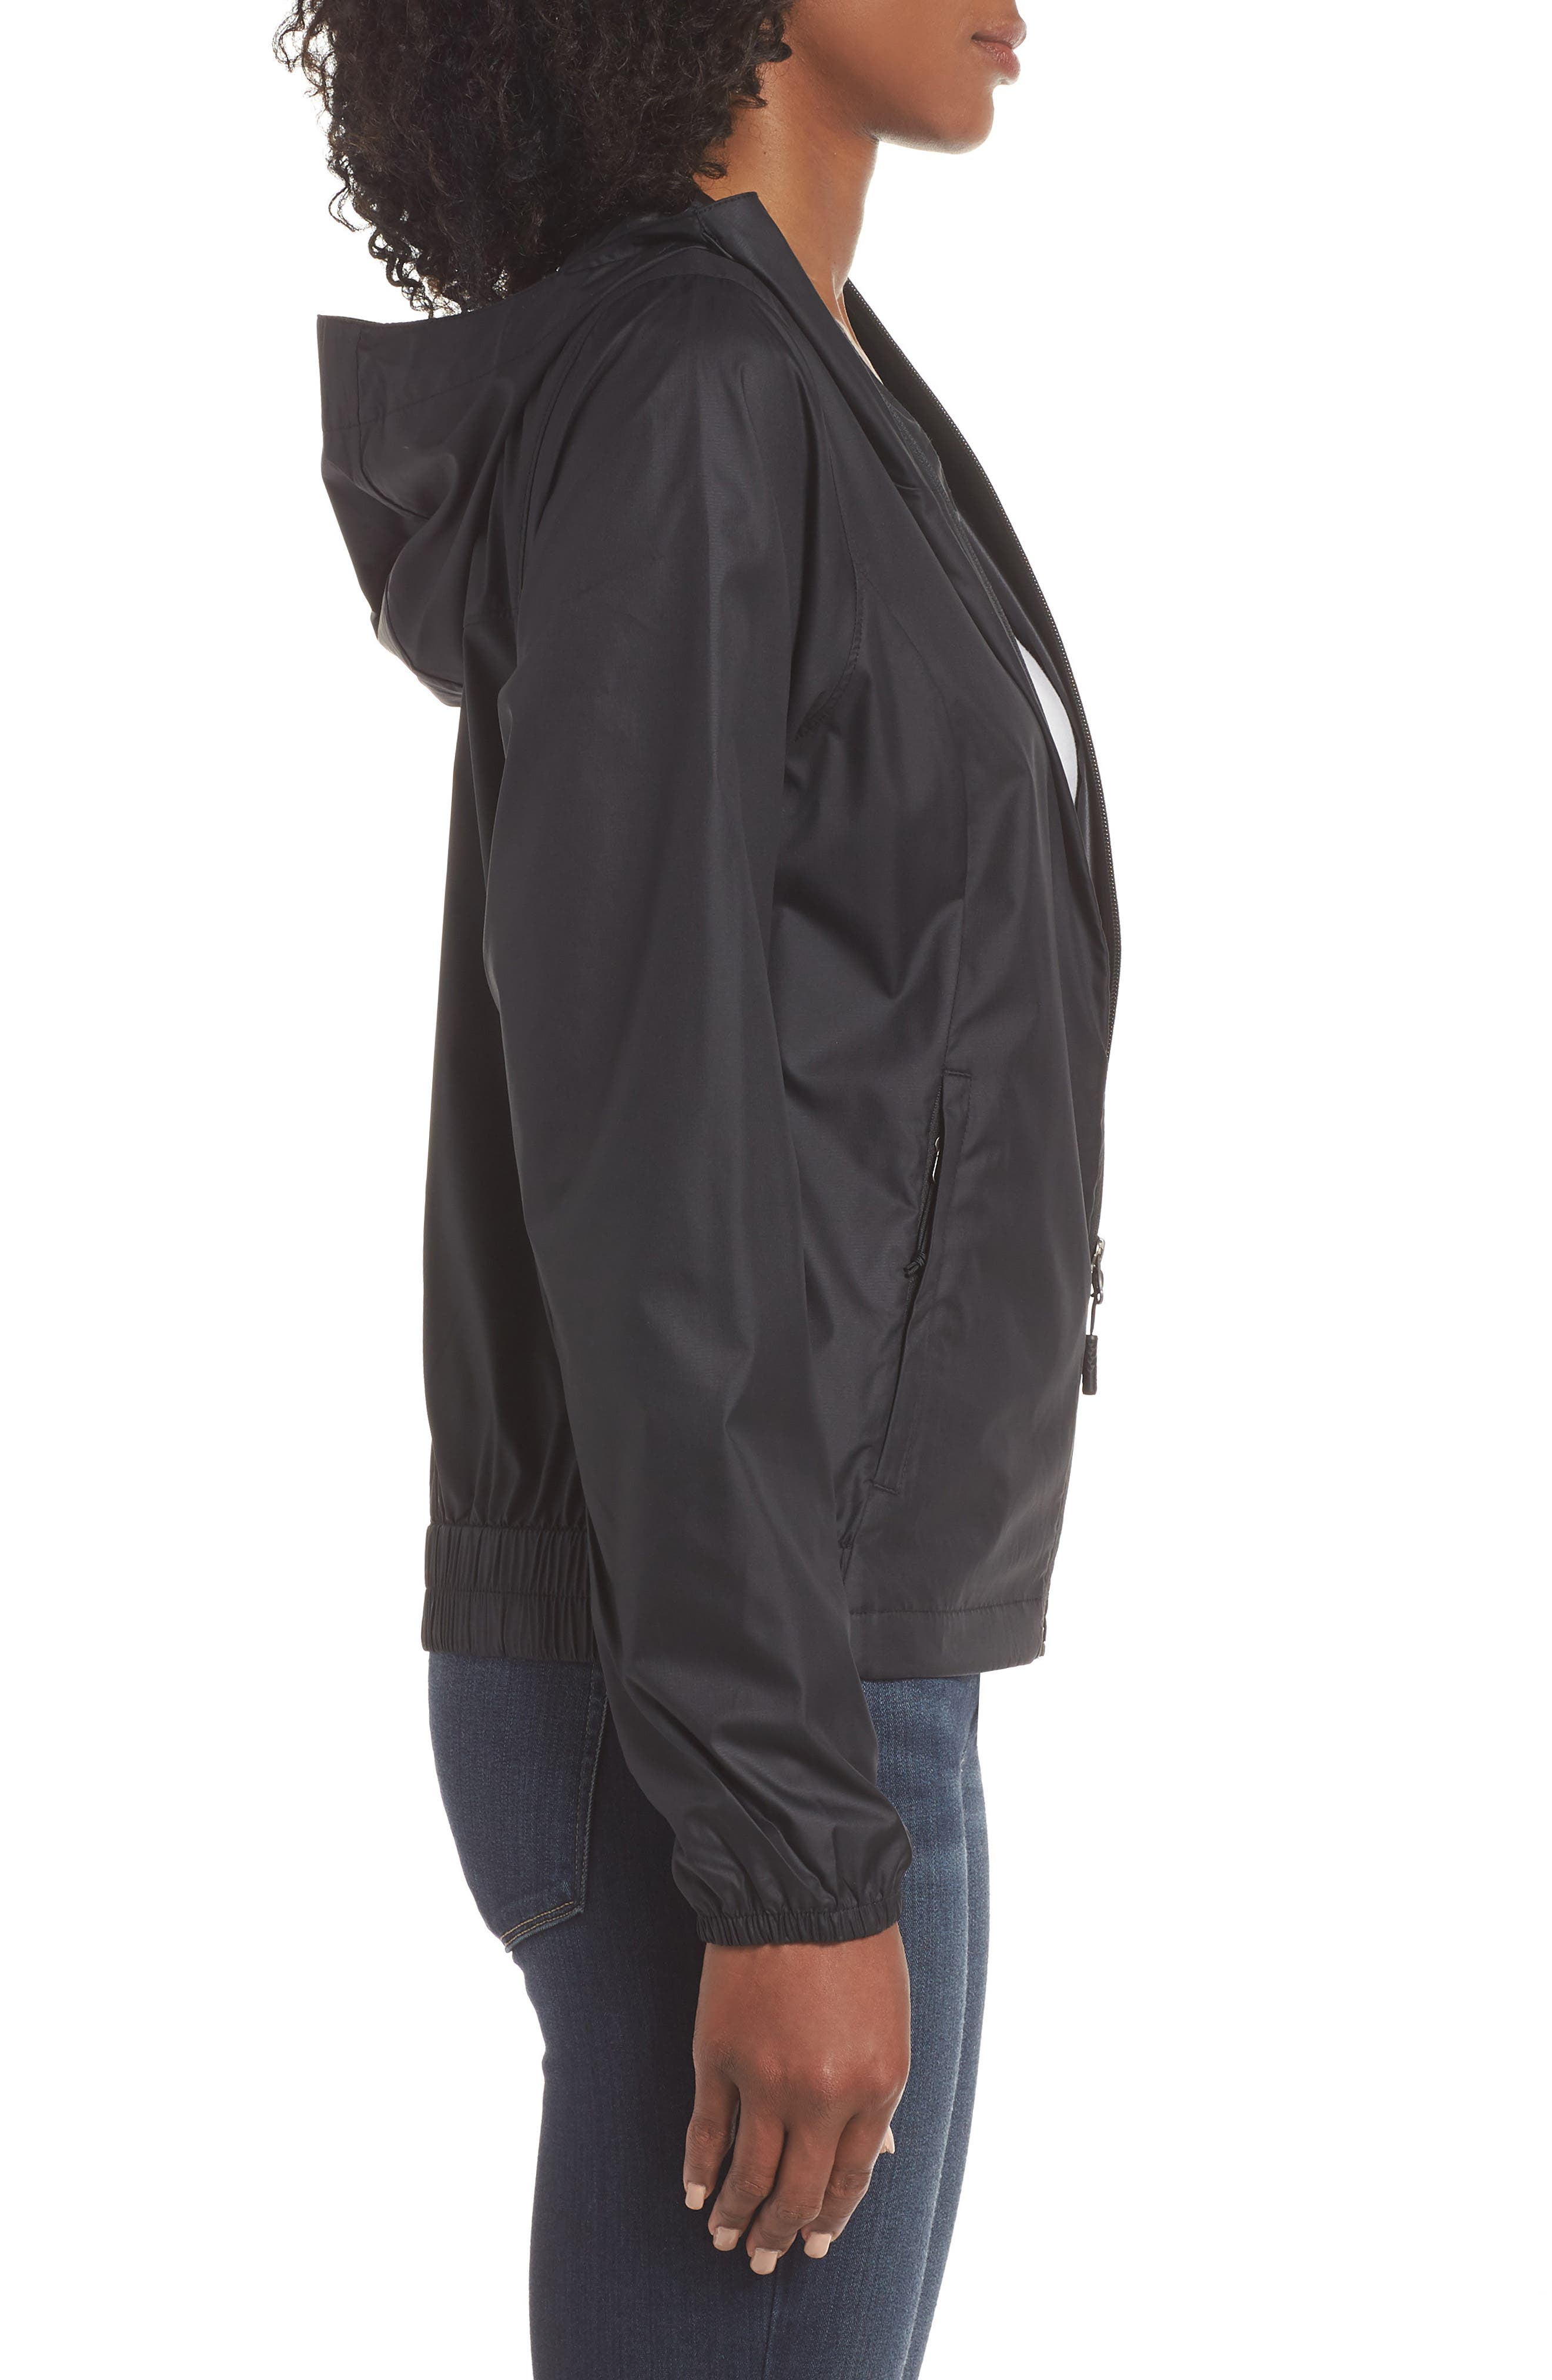 THE NORTH FACE, Cyclone 3.0 WindWall<sup>®</sup> Jacket, Alternate thumbnail 4, color, 001